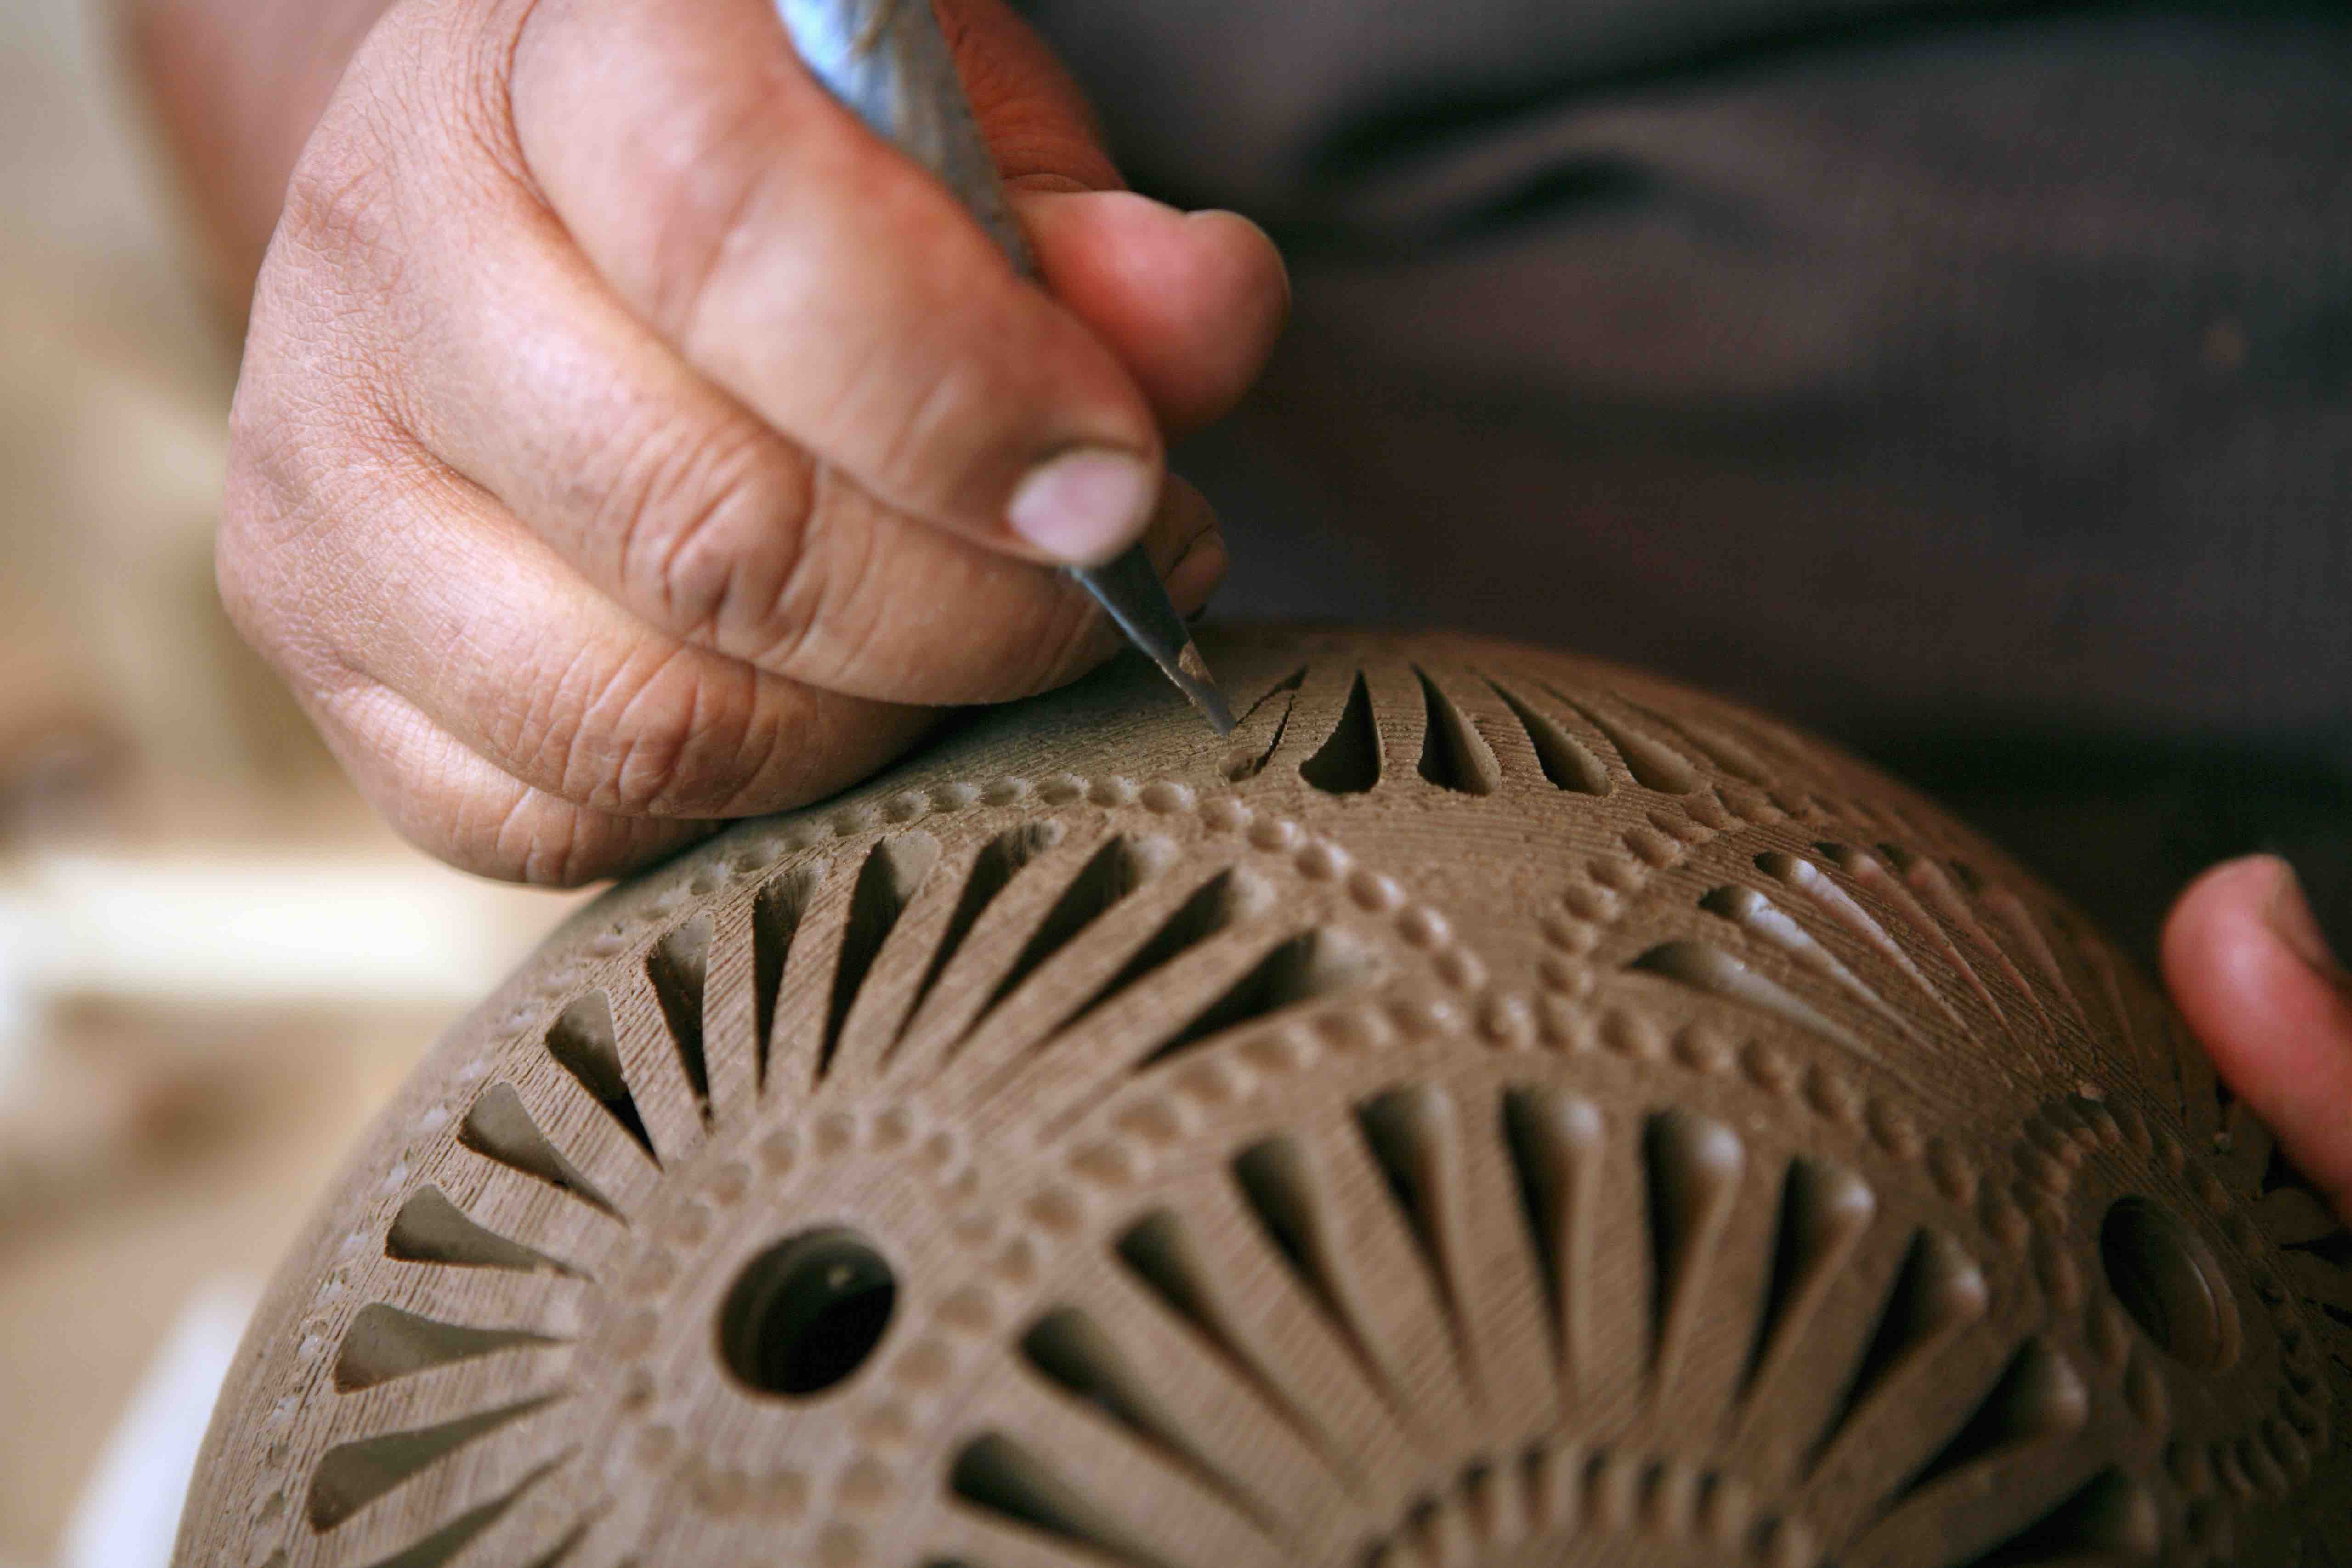 This Viral Video Will Make You Rethink Haggling With Artisans Over Prices